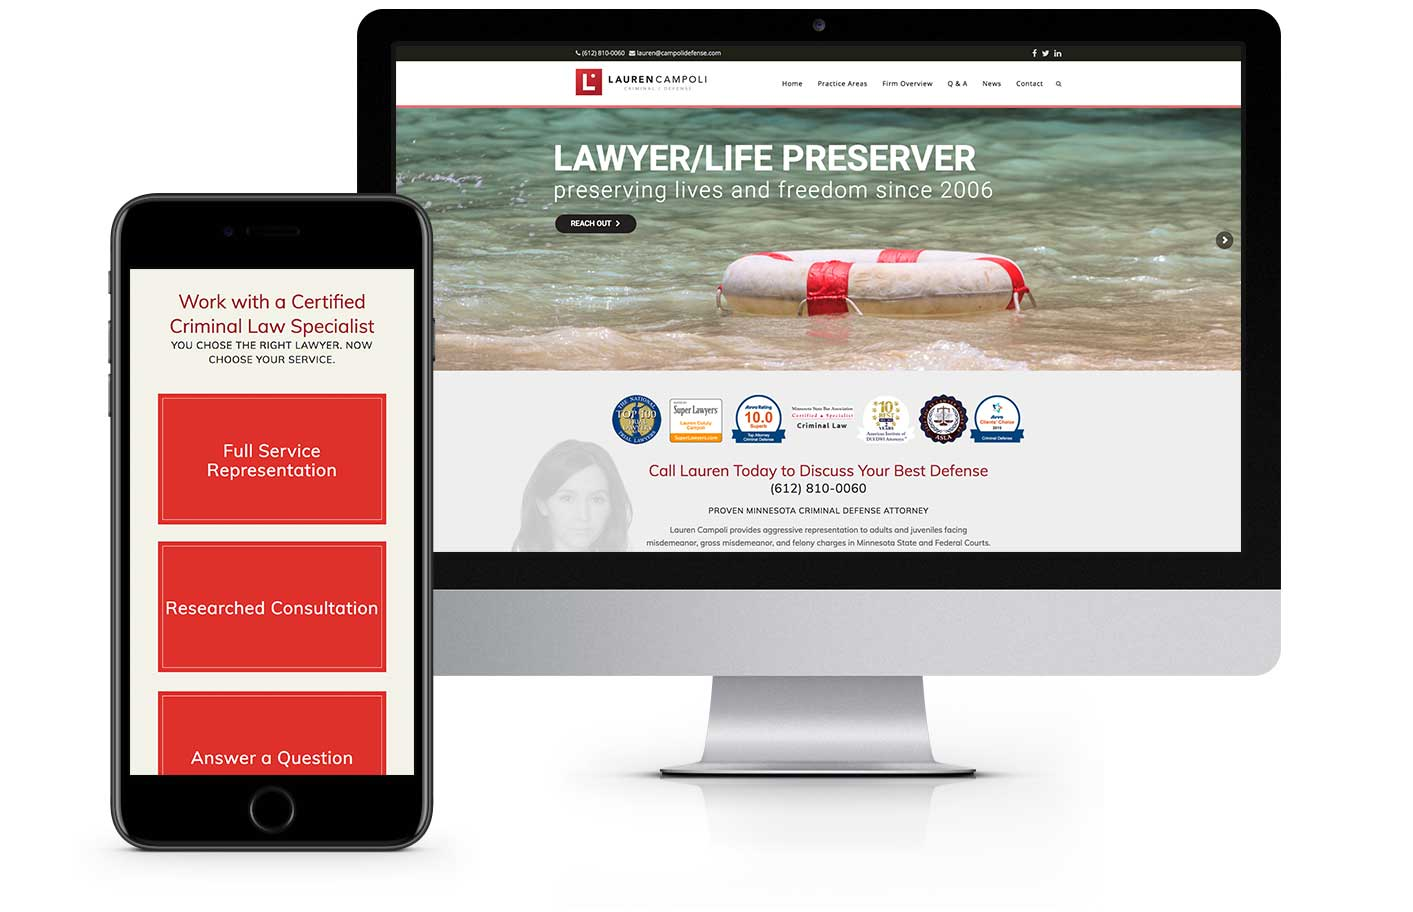 Web Design - The Law Office of Lauren Campoli